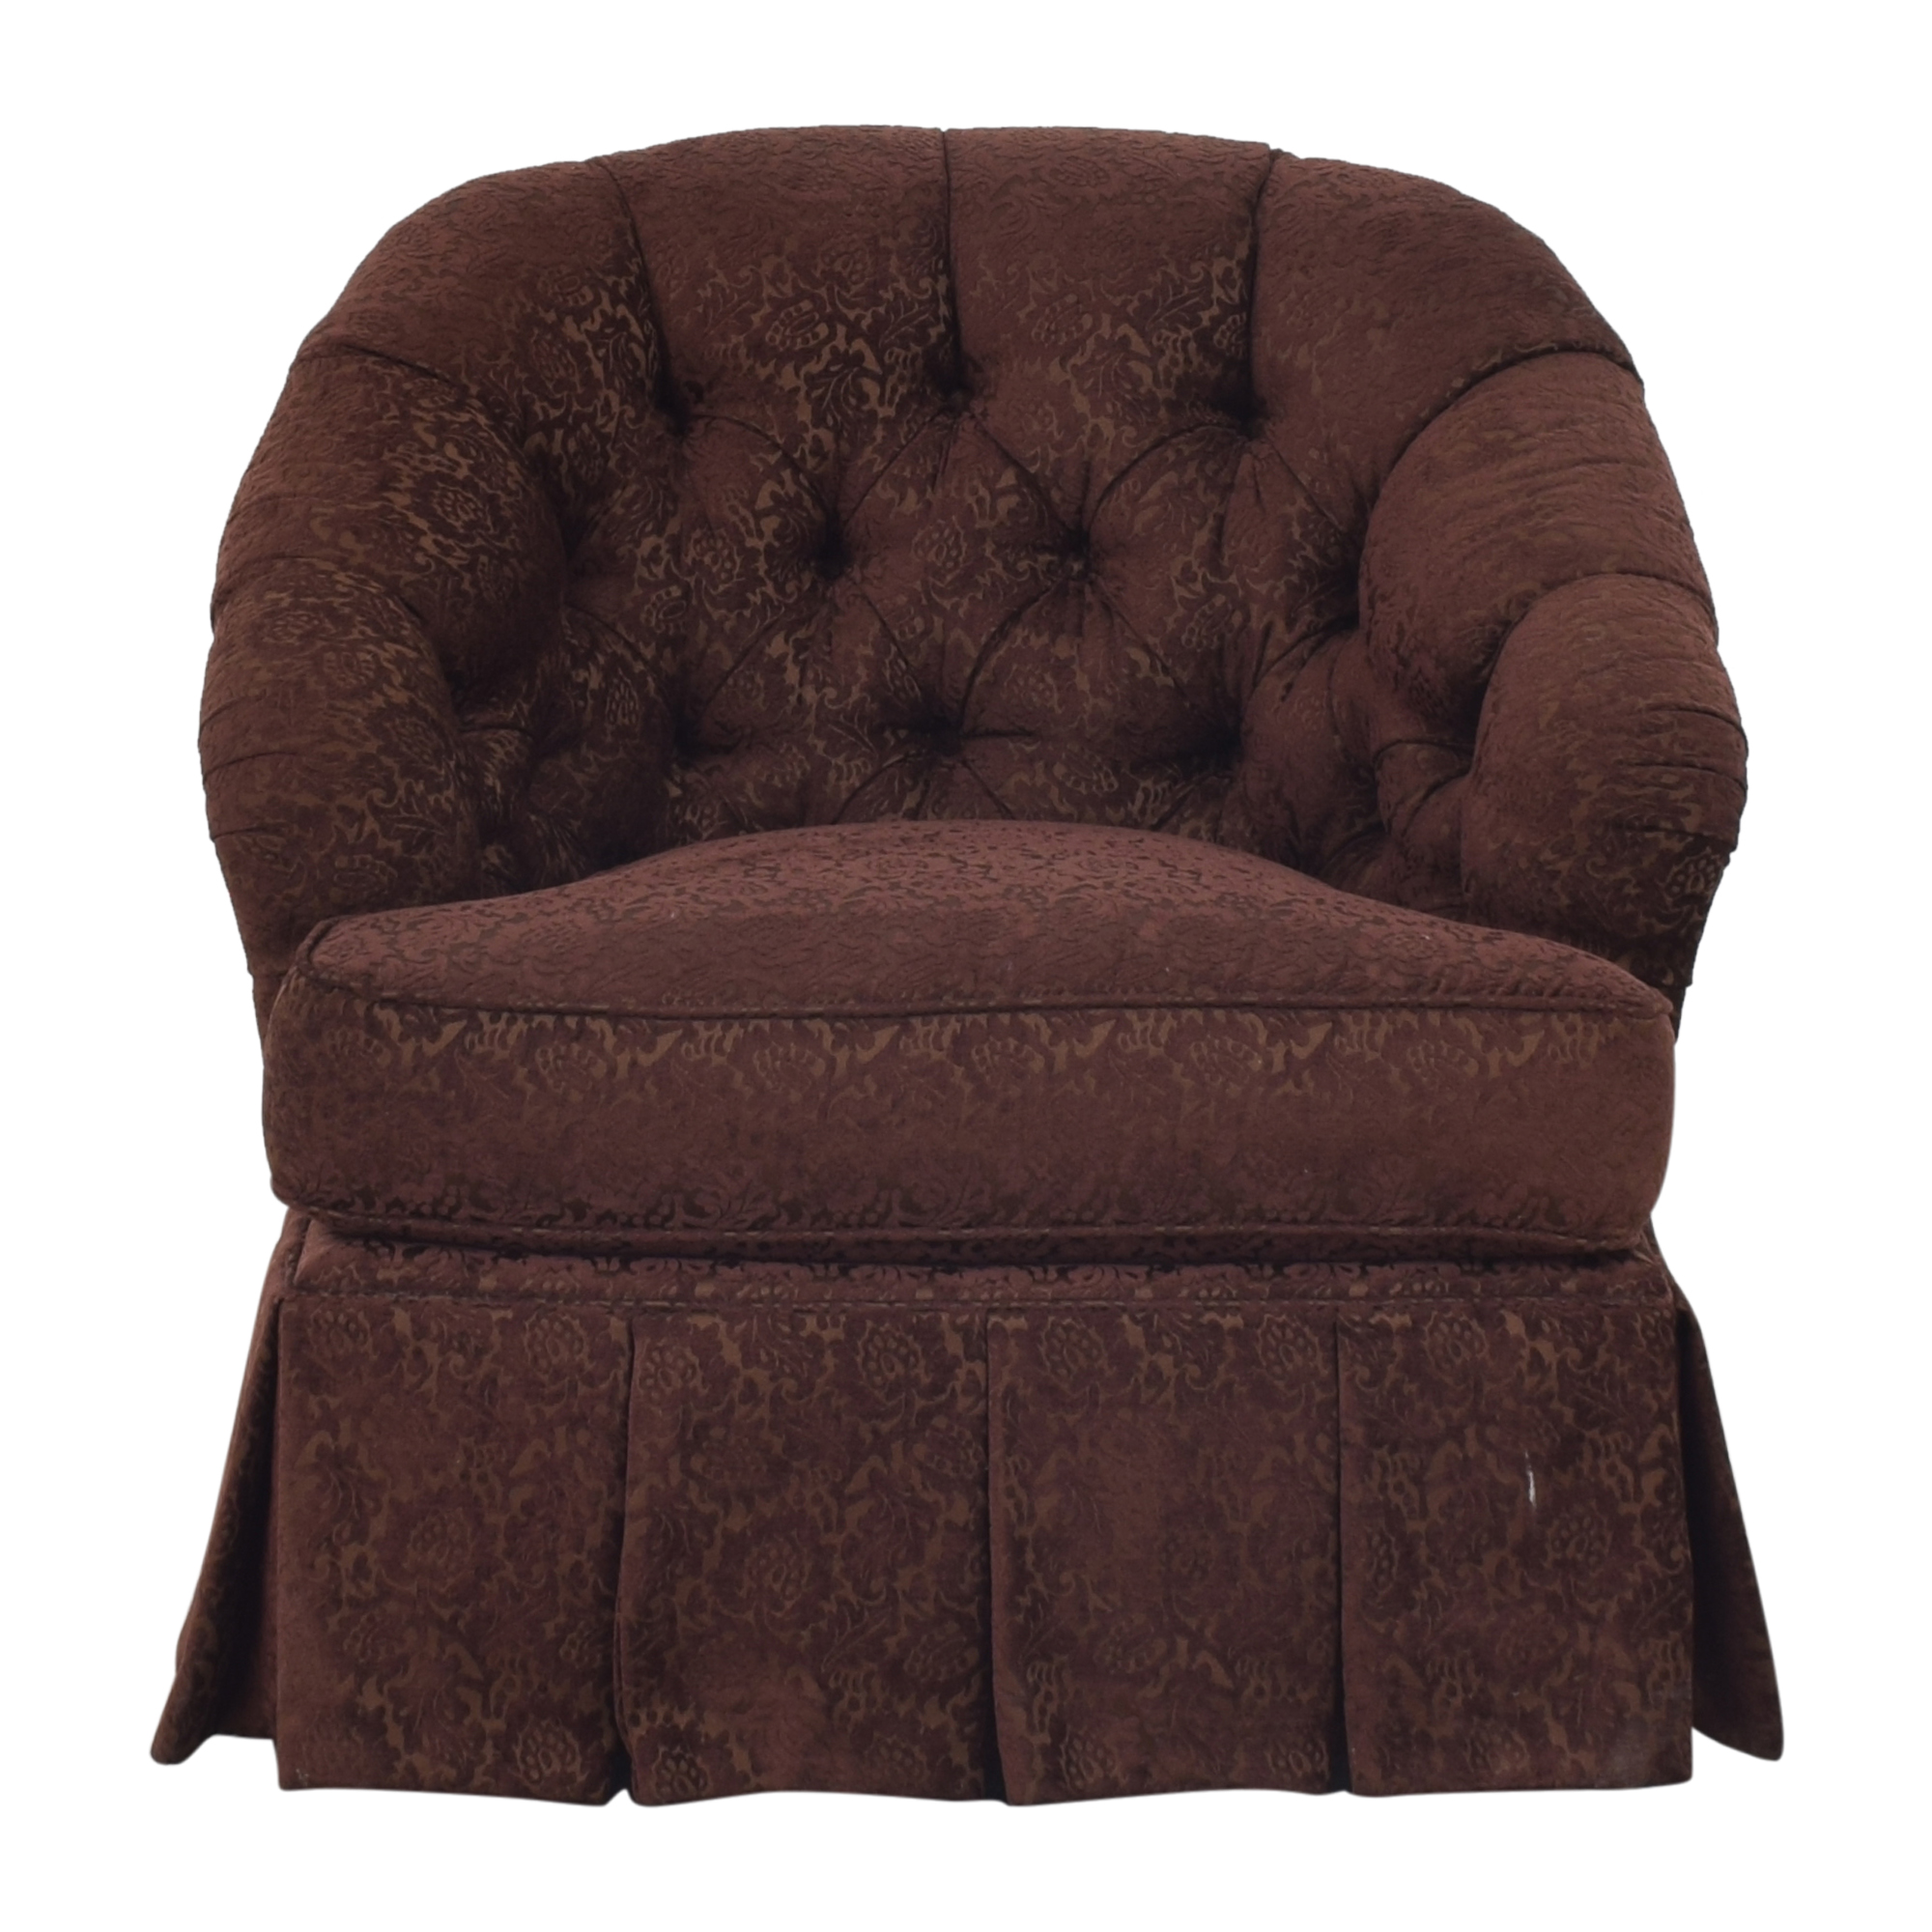 Ethan Allen Ethan Allen Diamond Tufted Swivel Chair nyc